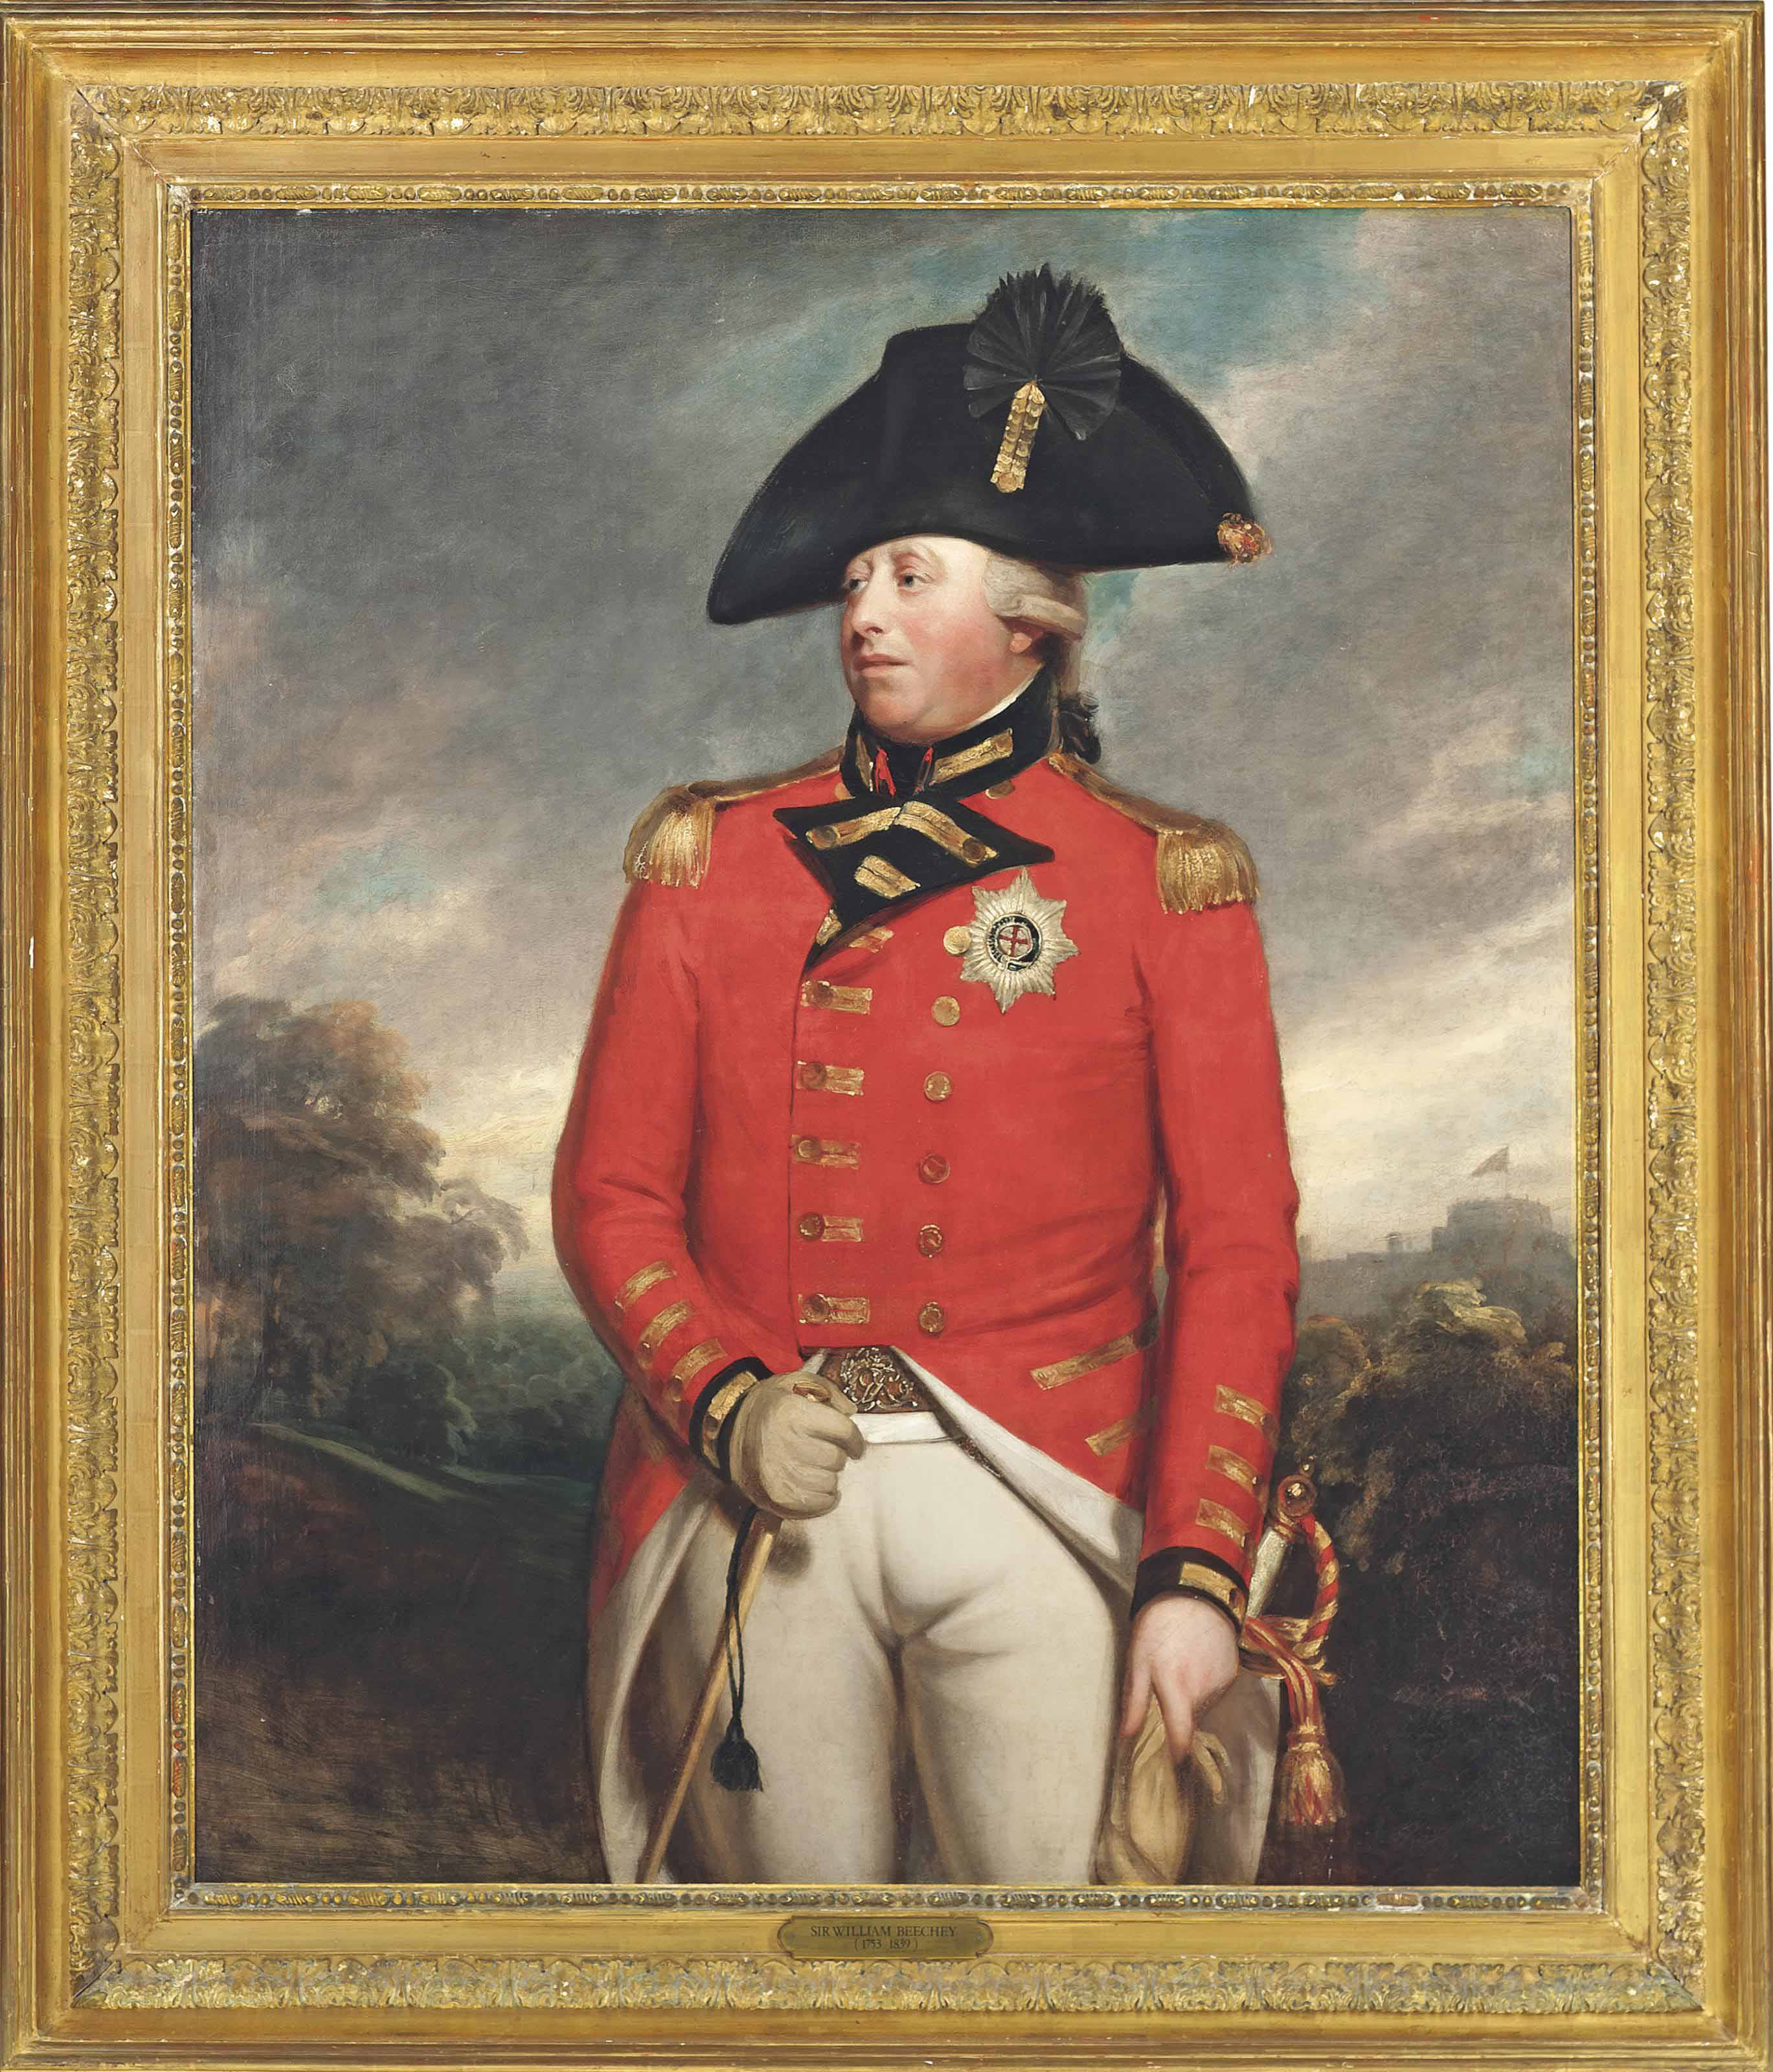 Portrait of King George III (1738-1820), three-quarter-length, in Field Marshal's uniform, with the Star of the Order of the Garter, with Windsor Castle beyond